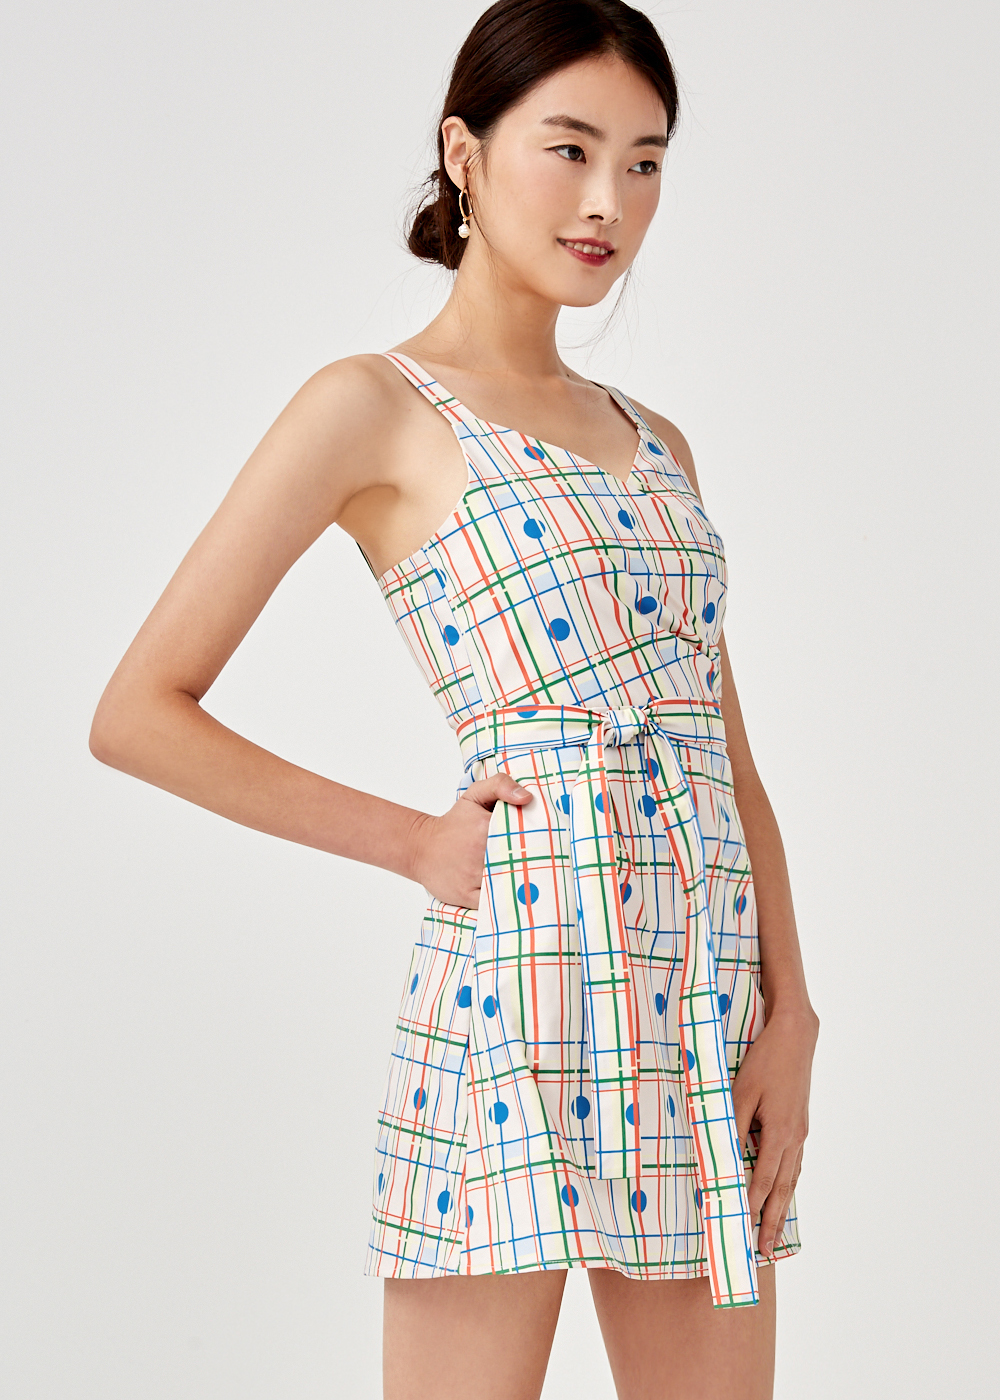 Adaline Crossover Sash Tie Dress in Rainbow Tile